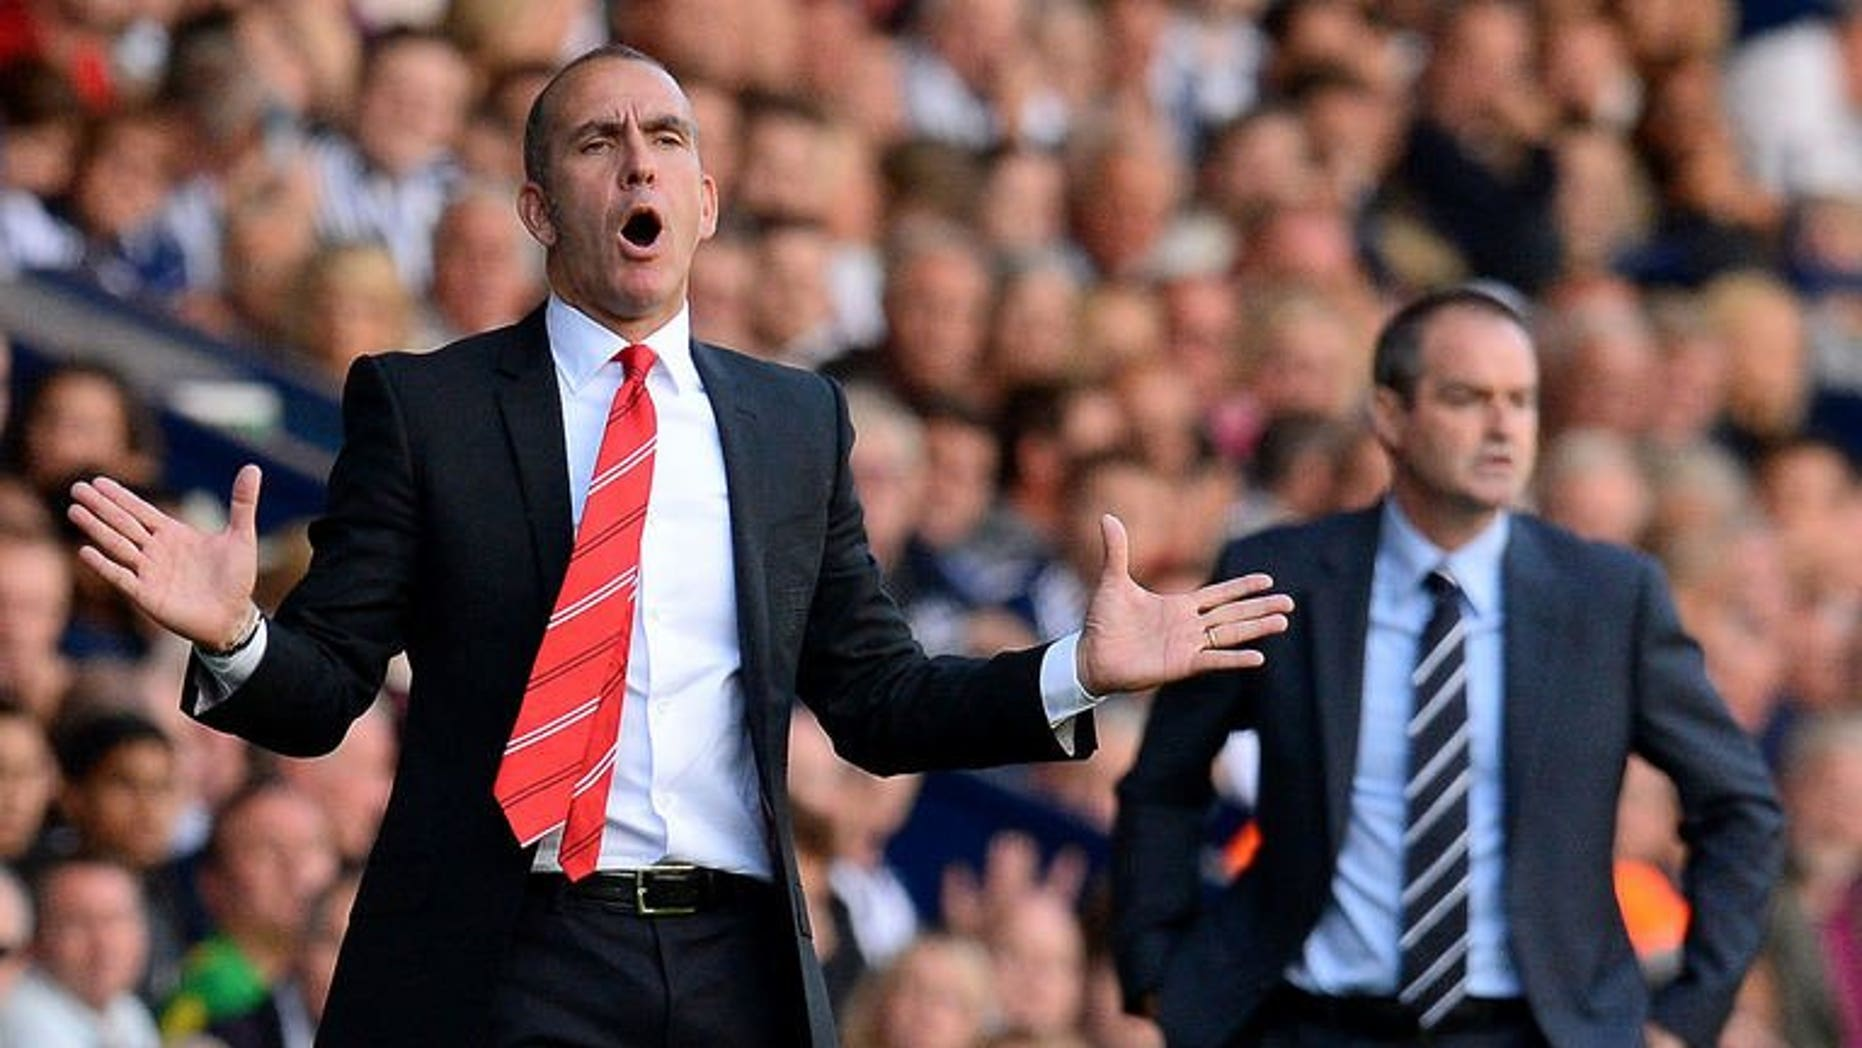 Sunderland manager Paolo Di Canio (L) reacts during the English Premier League football match between West Bromwich Albion and Sunderland at The Hawthorns in West Bromwich, central England, on September 21, 2013. West Bromwich Albion won 3-0.